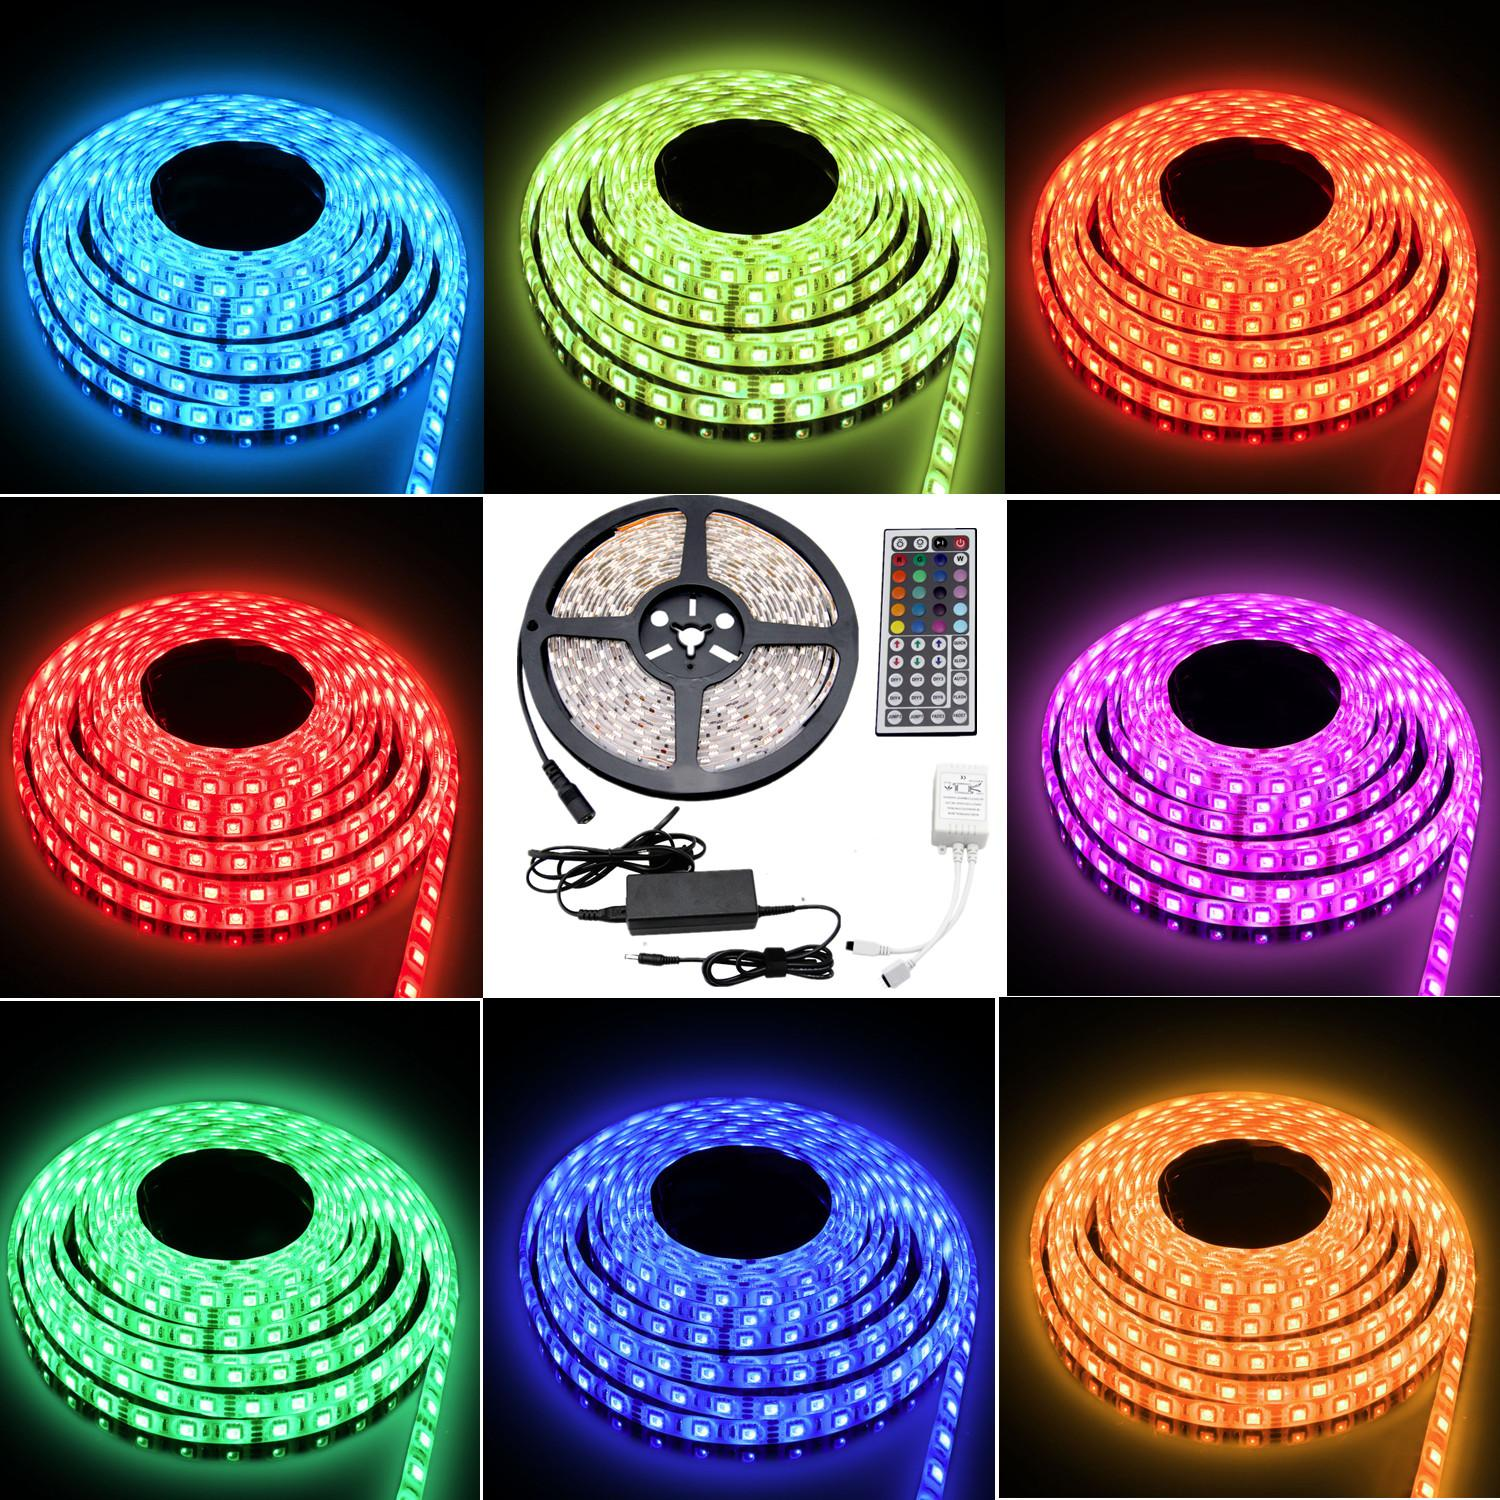 Besdata 16 4ft 5m Waterproof Rope Lights 300 Led 5050 Smd